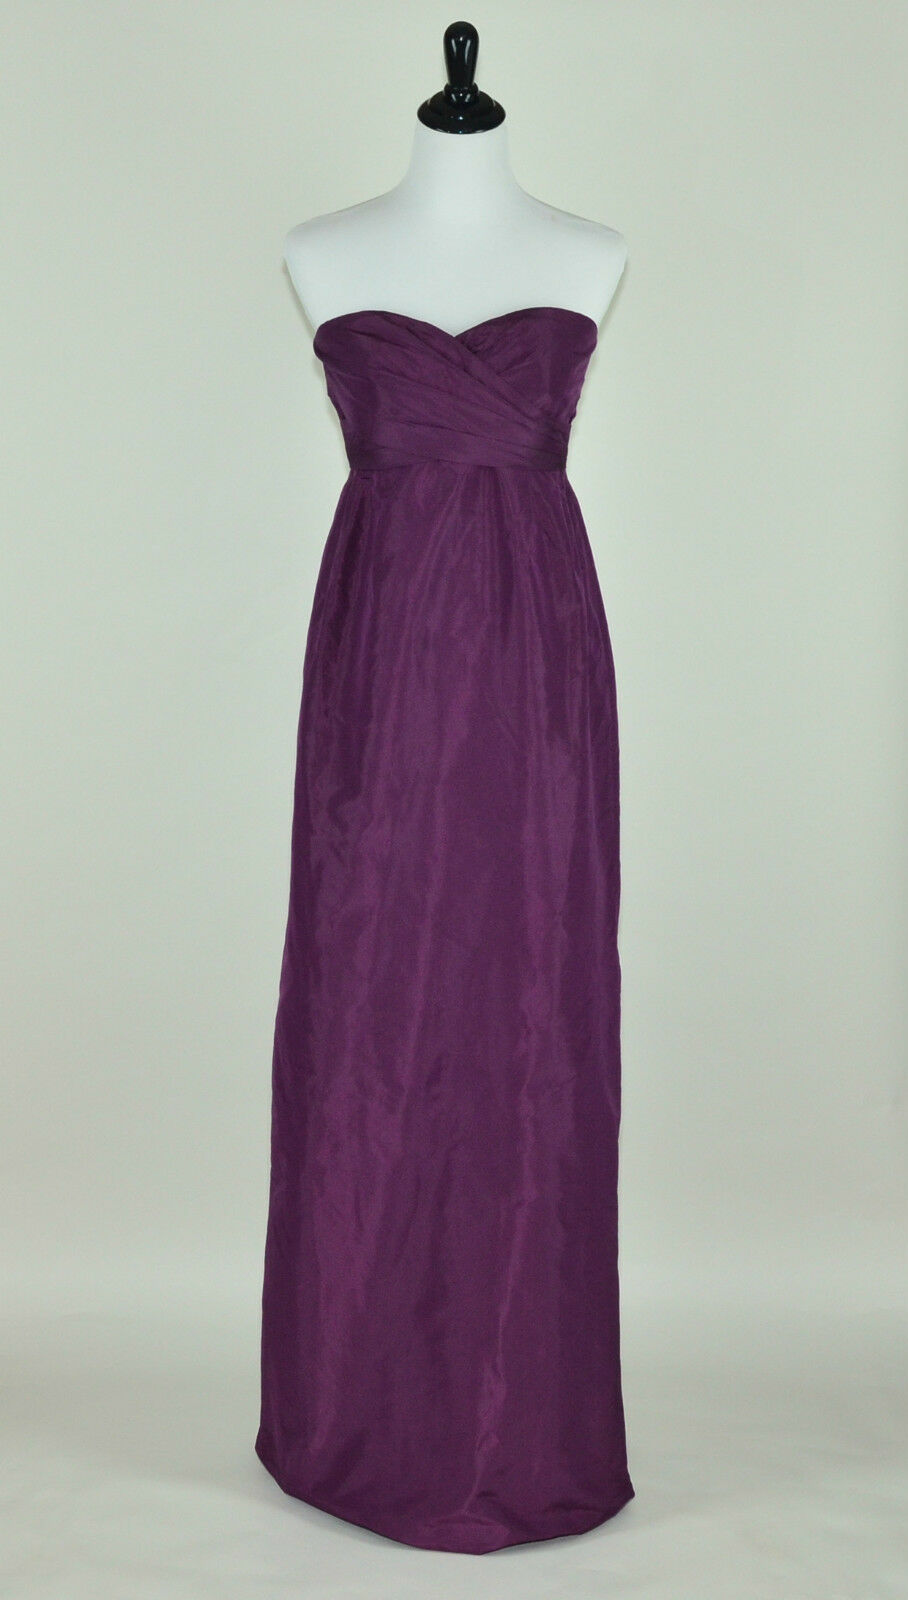 J CREW COLLECTION  SILK TAFFETA ARABELLE GOWN 4 SPICED WINE LONG DRESS PROM